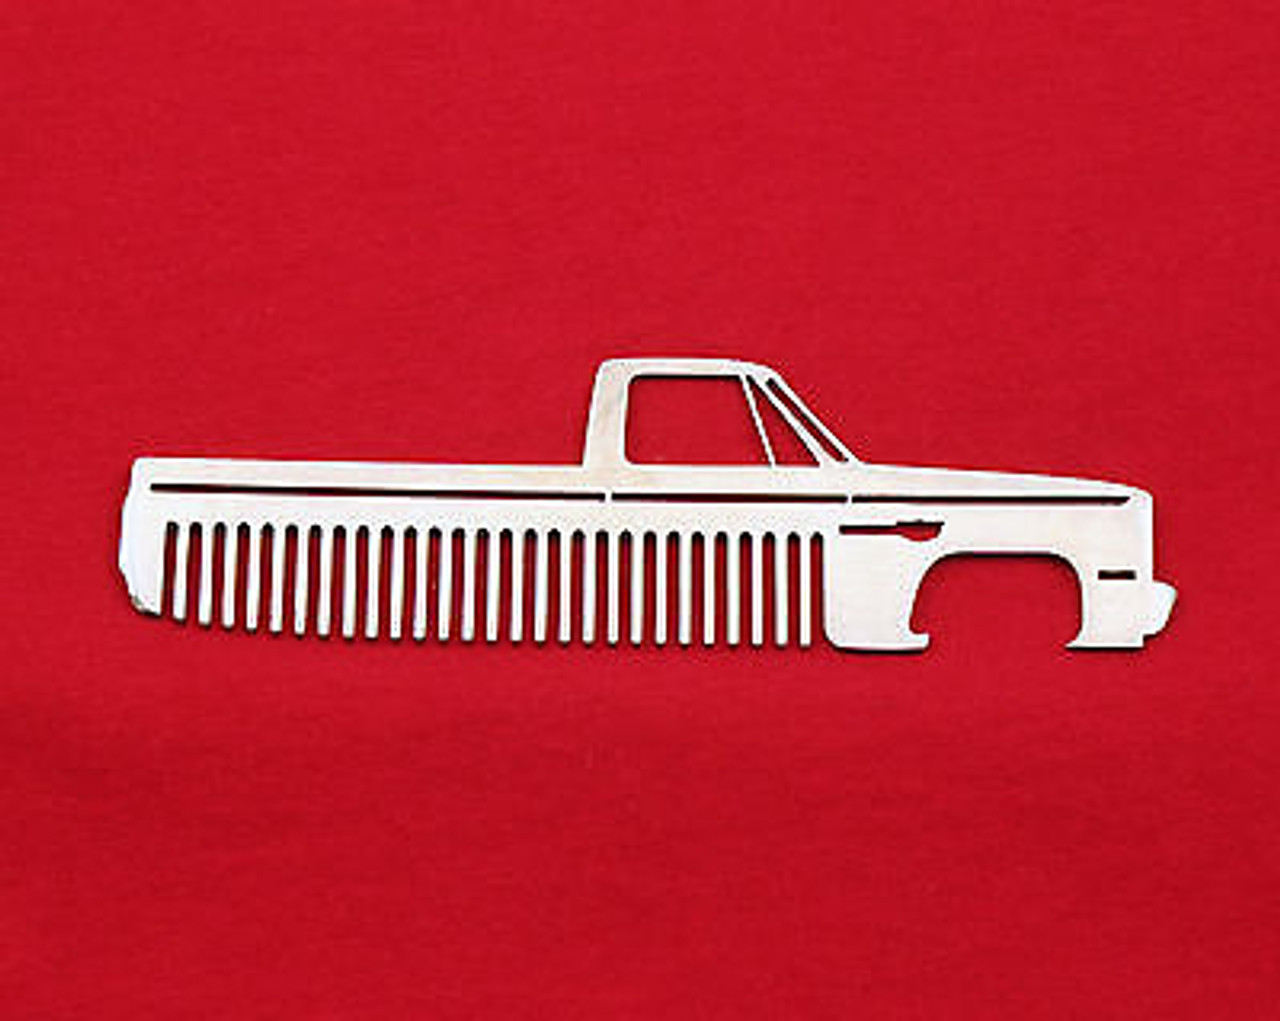 small resolution of 73 87 chevy truck brushed stainless steel metal trim beard hair mustache comb